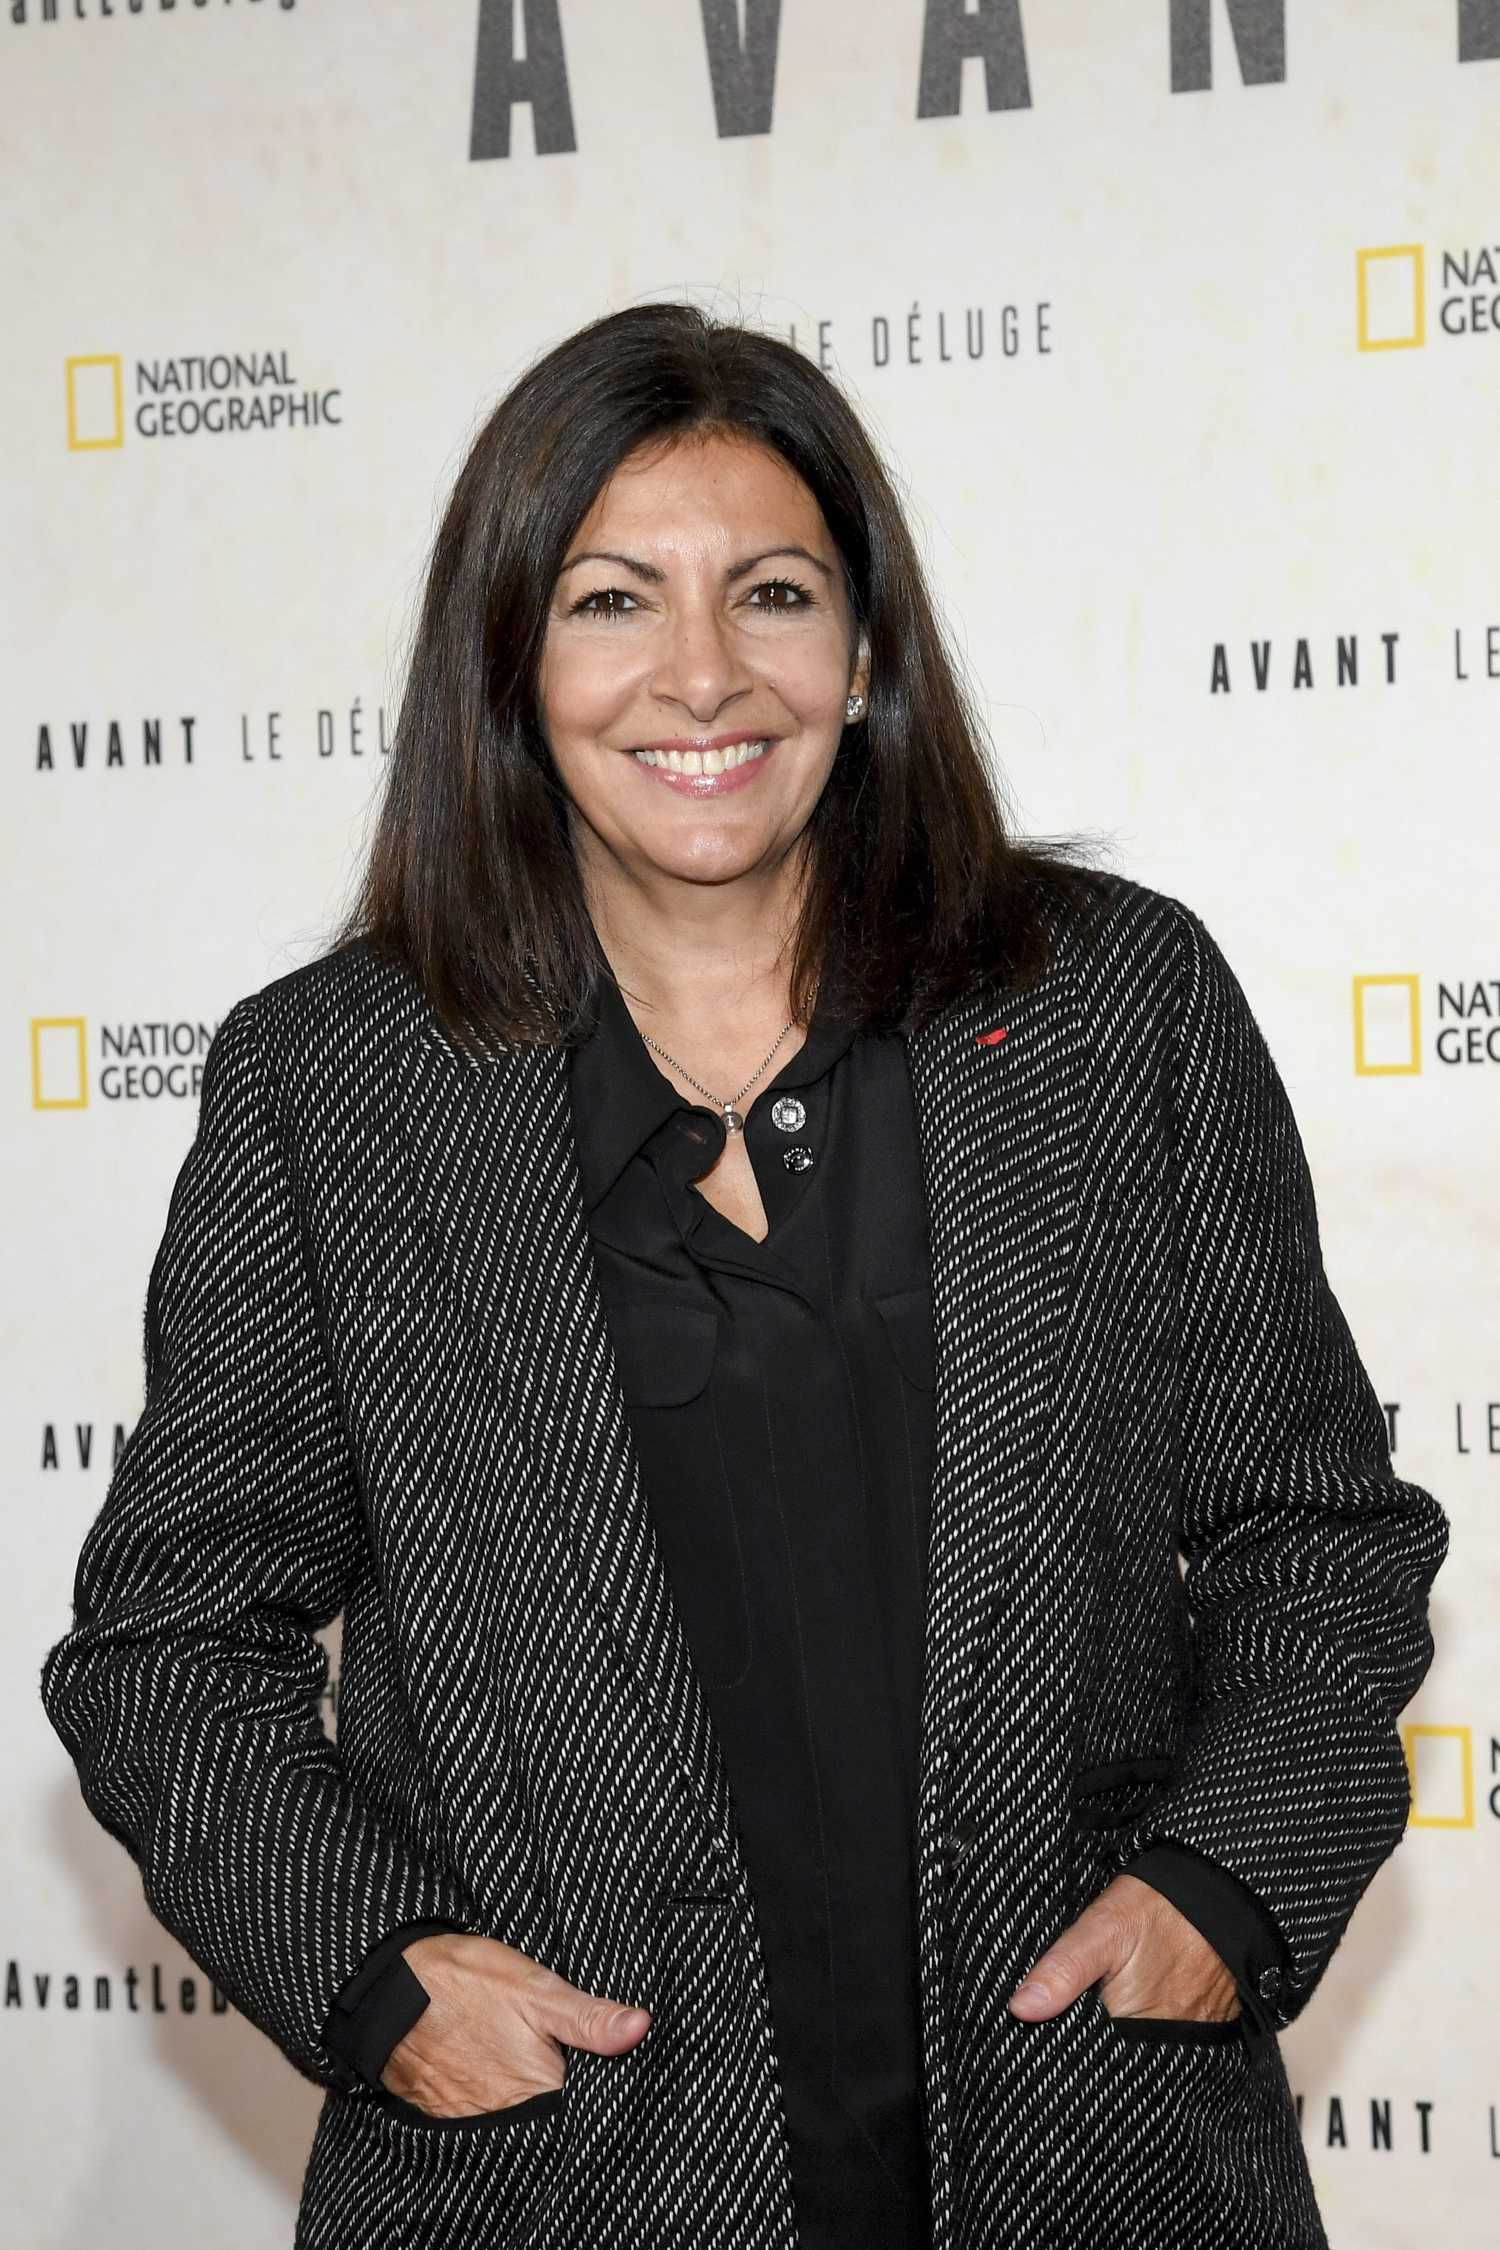 Photo Of The Entire Plant Of Dog Fennel Eupatorium: Anne Hidalgo At The Before The Flood Photocall In Paris